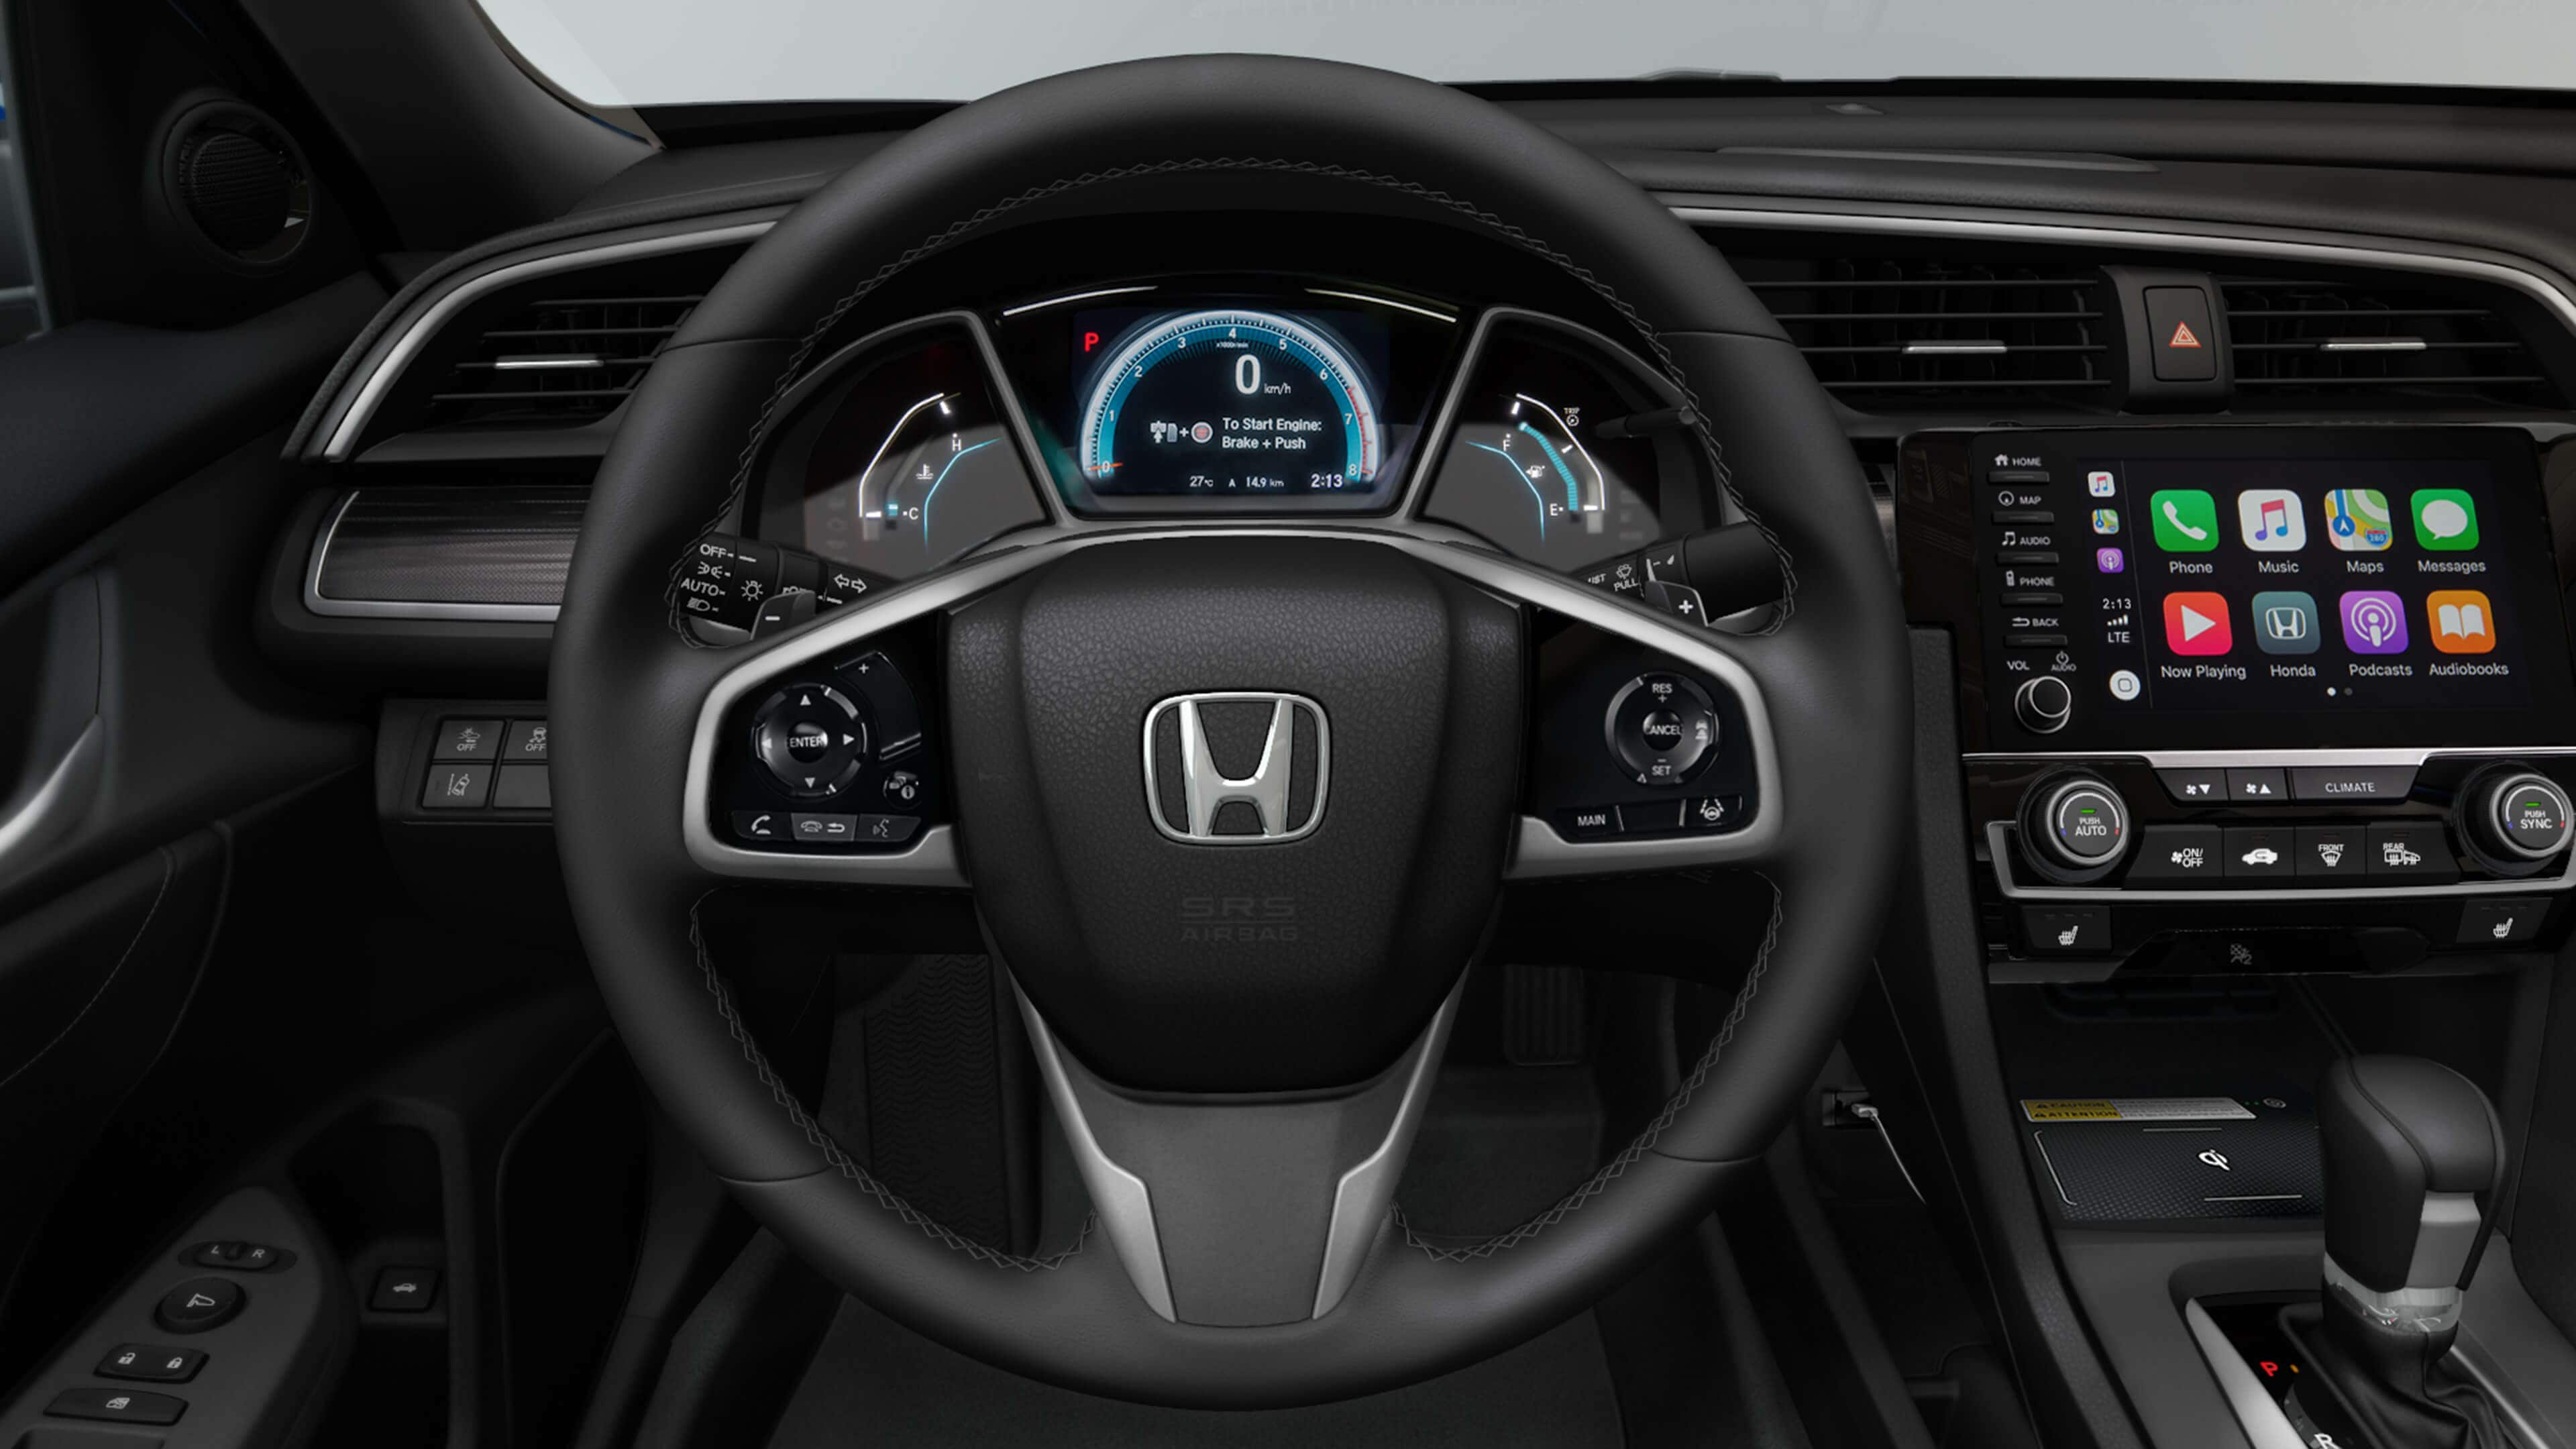 2019 Civic Sedan interior